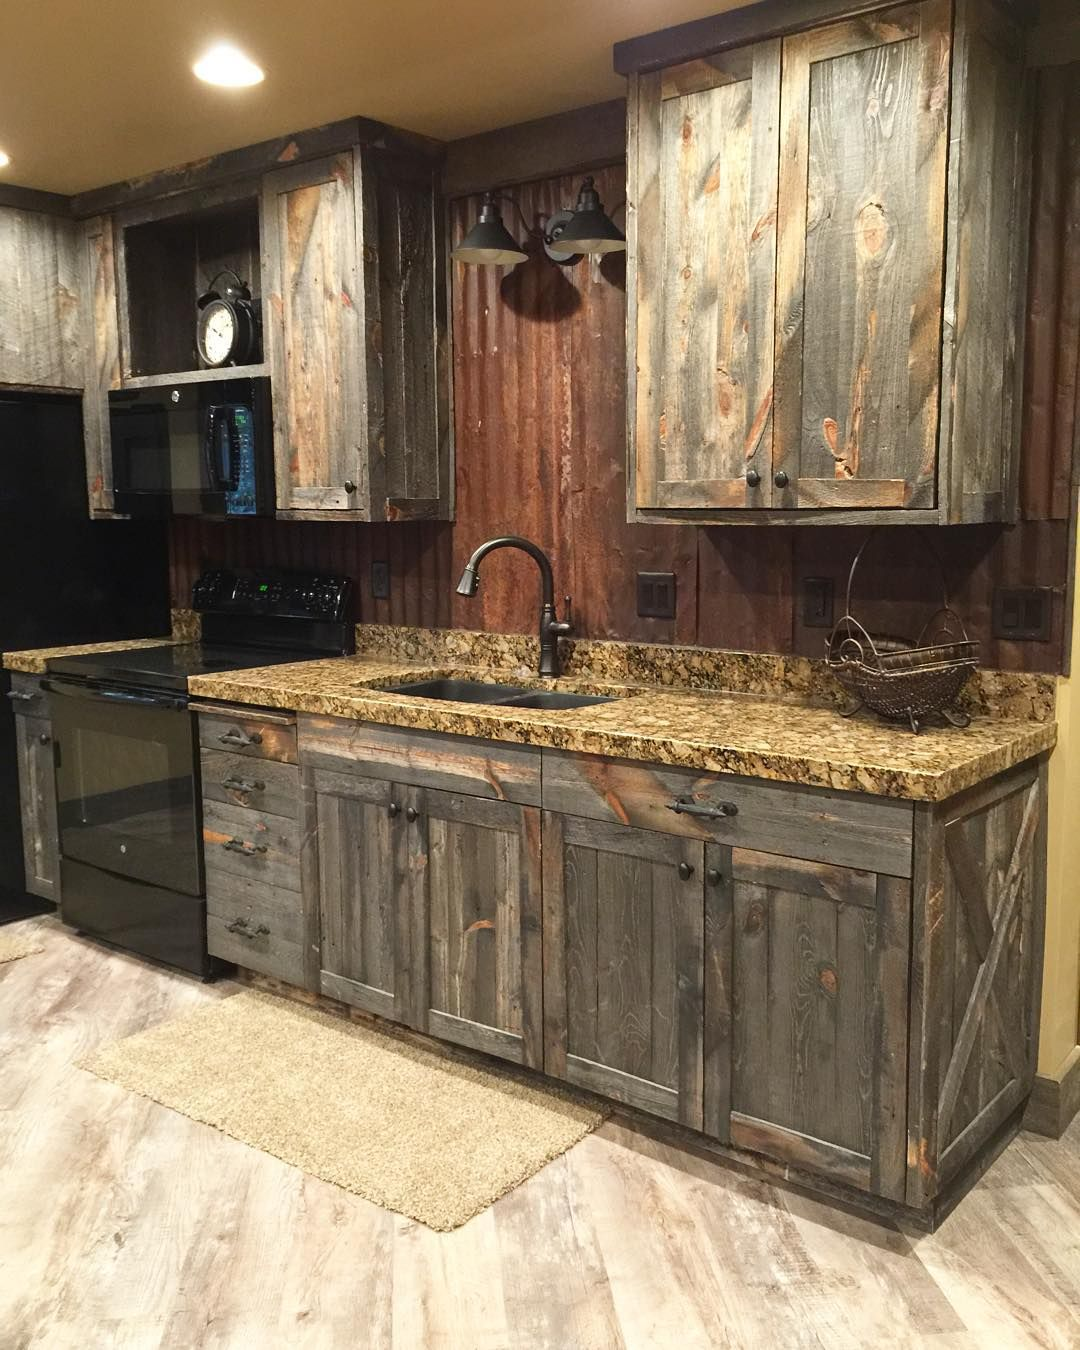 15 rustic kitchen cabinets designs ideas with photo gallery - Cabinets Design Ideas